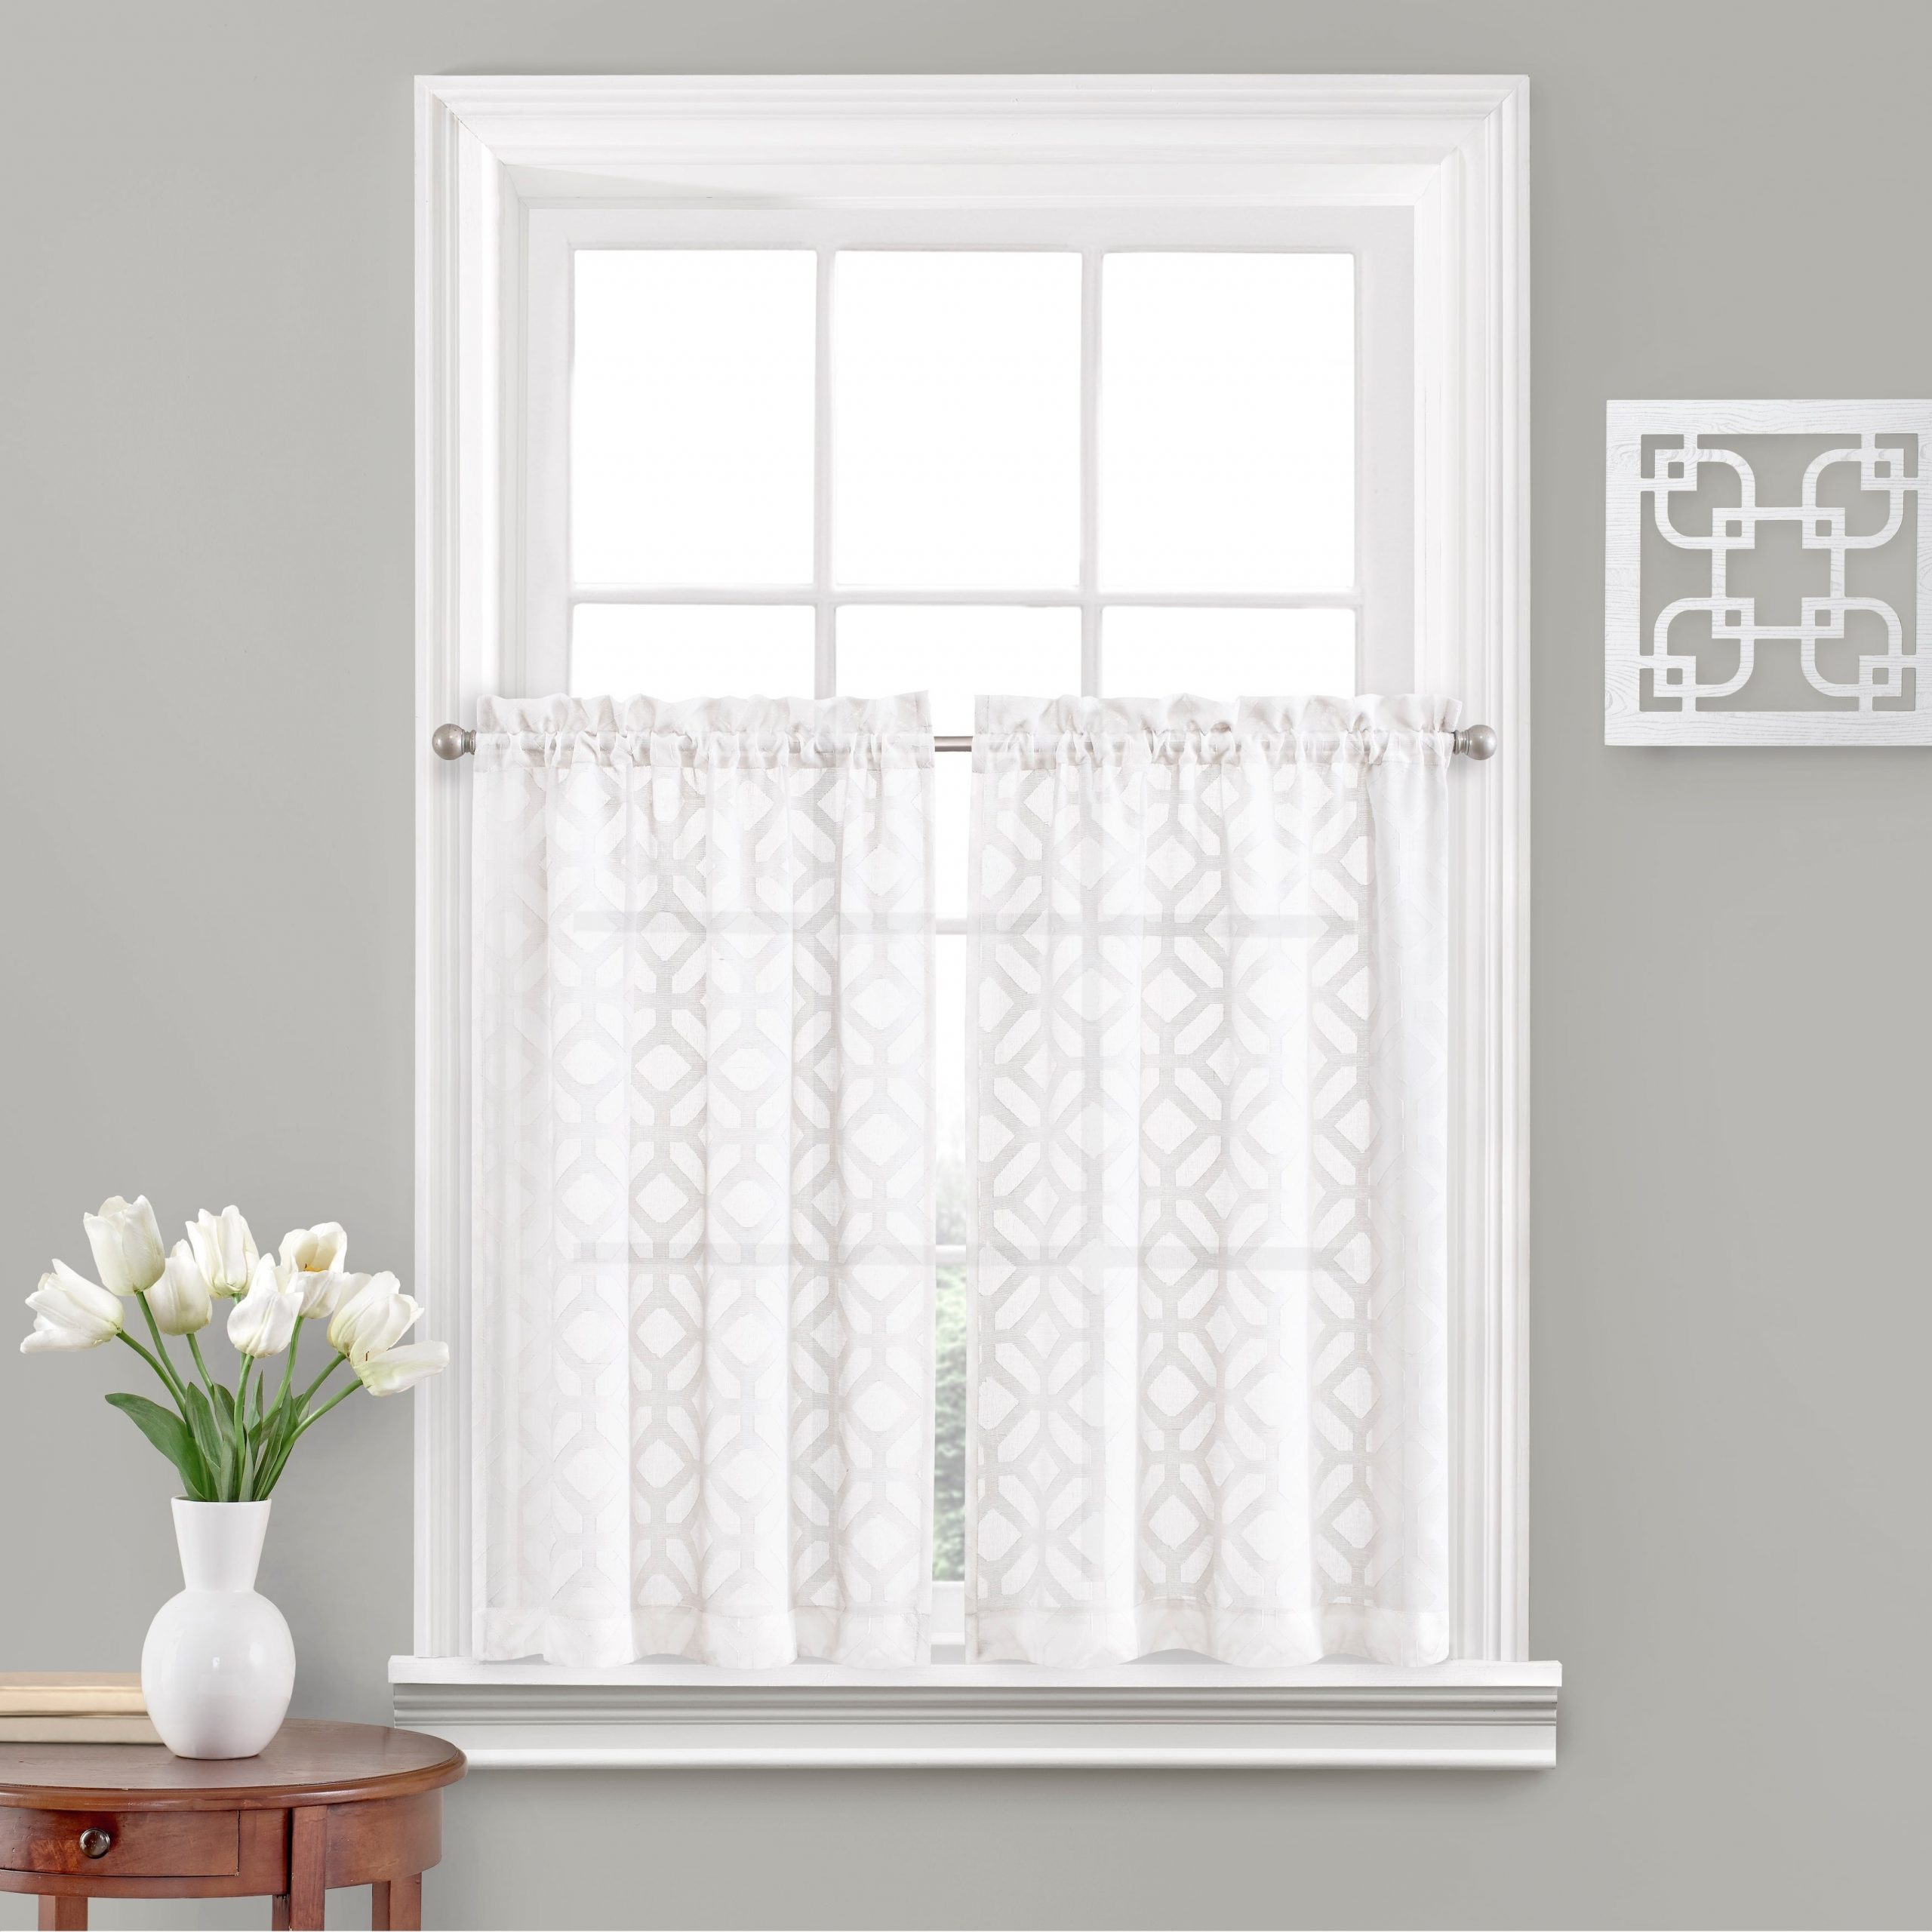 Vue Window Solutions Trellis Clip Tier Pair For White Tone On Tone Raised Microcheck Semisheer Window Curtain Pieces (View 18 of 20)